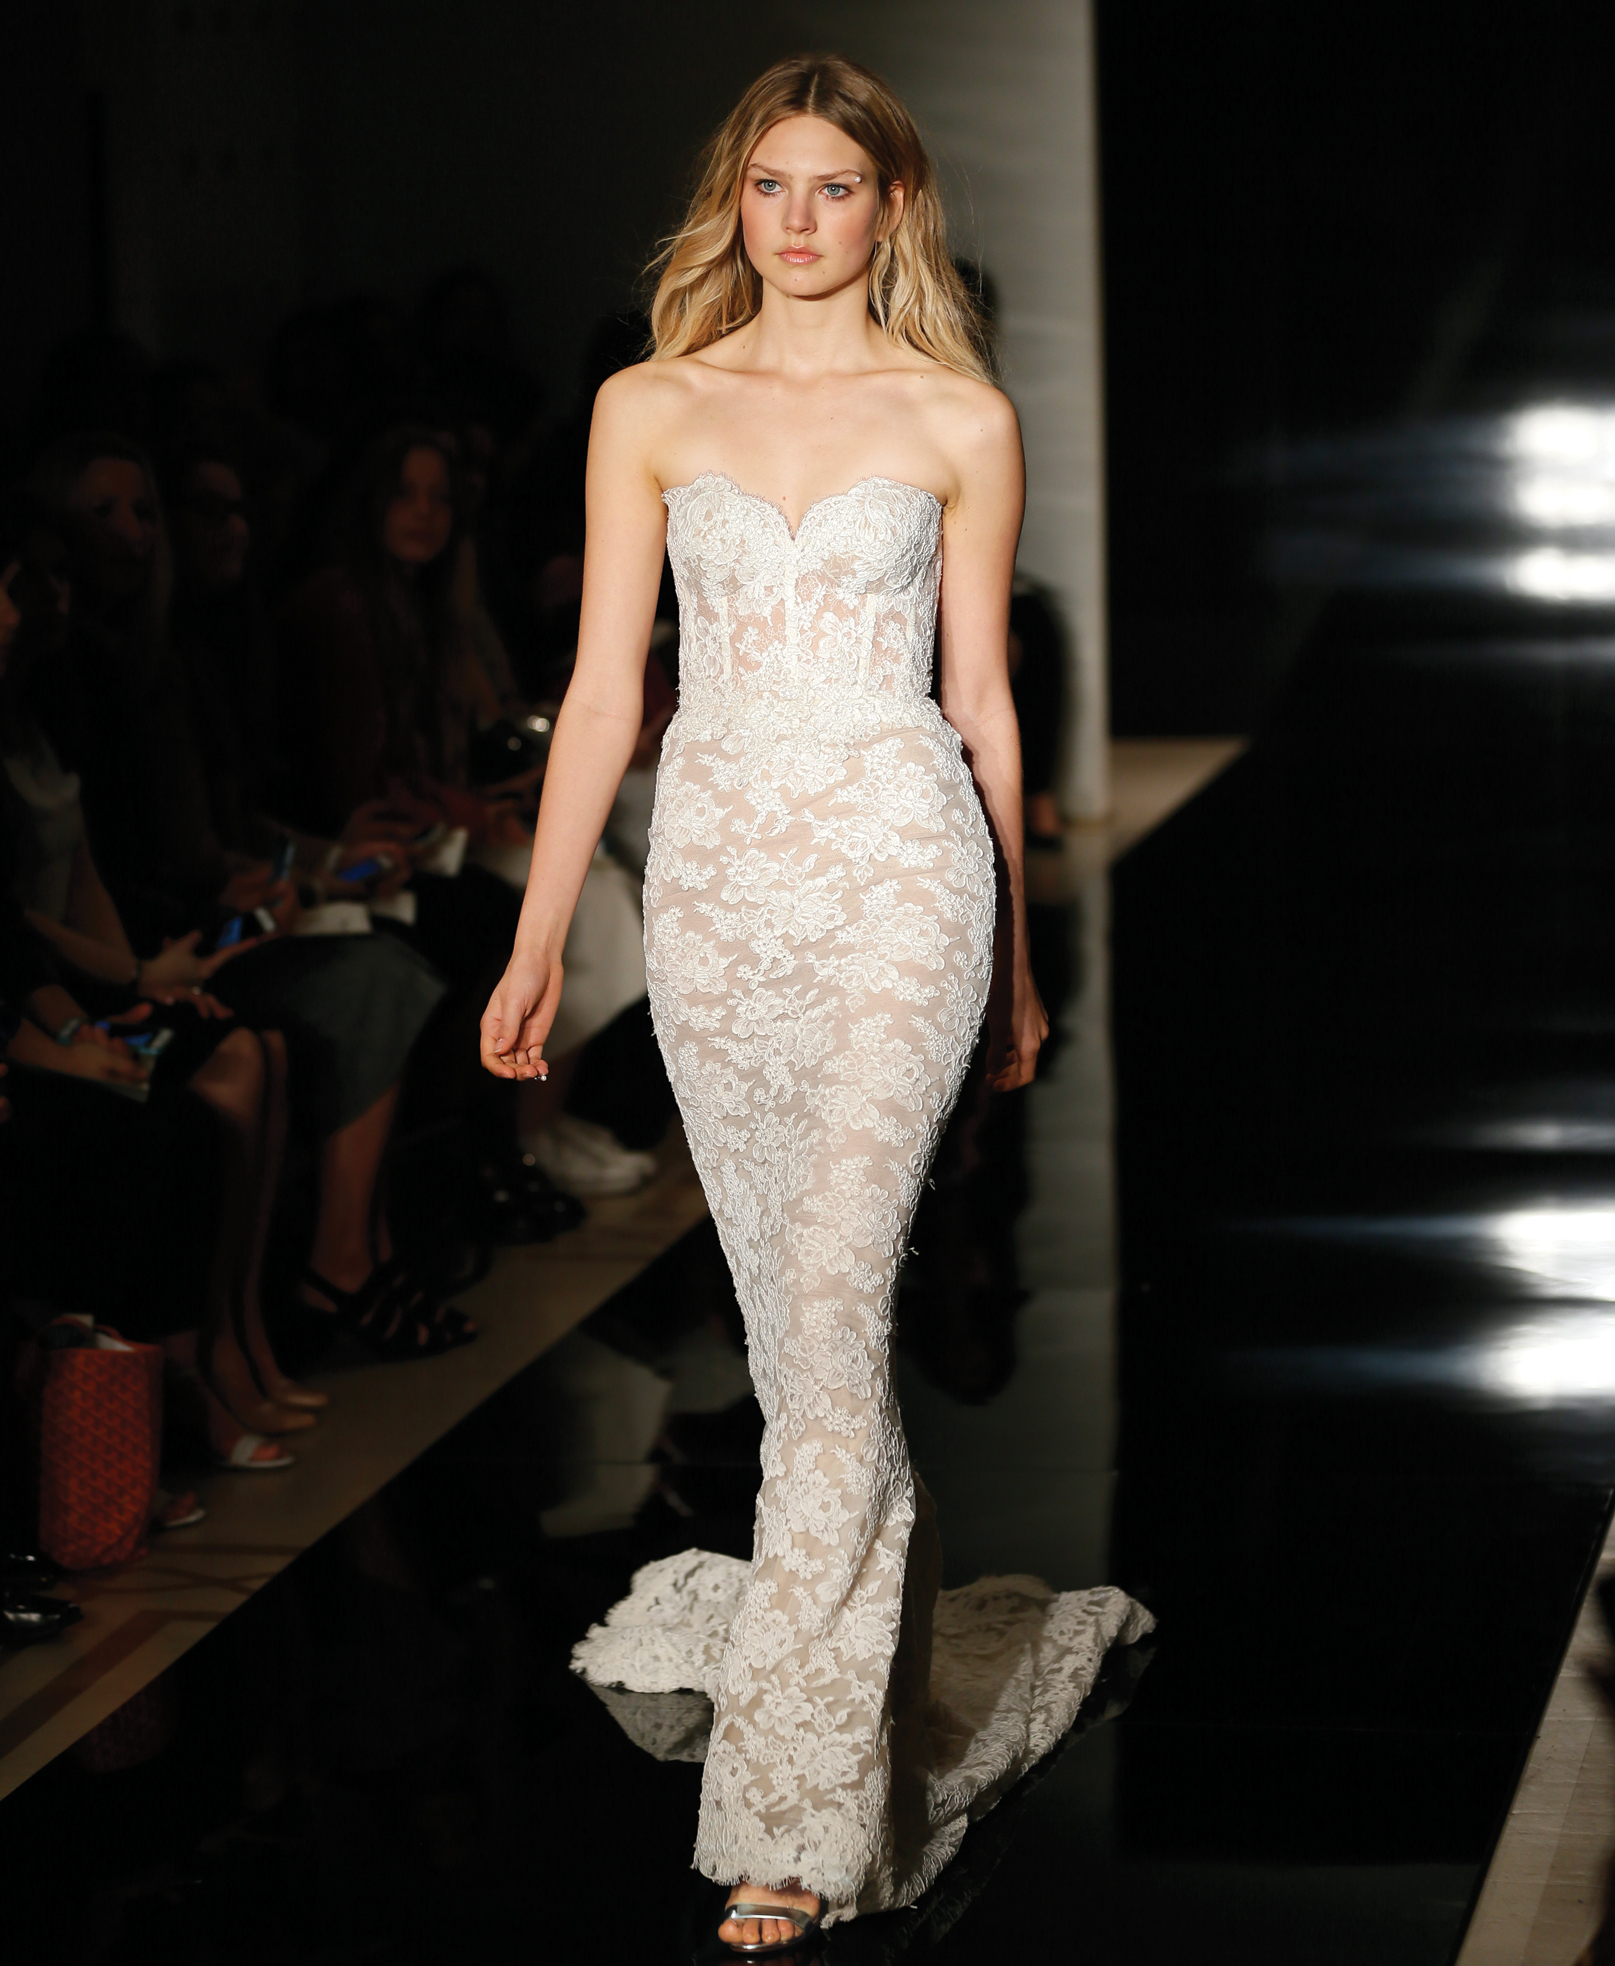 Sheath Dress Bridal Wedding Gown by Reem Acra - NY, NJ